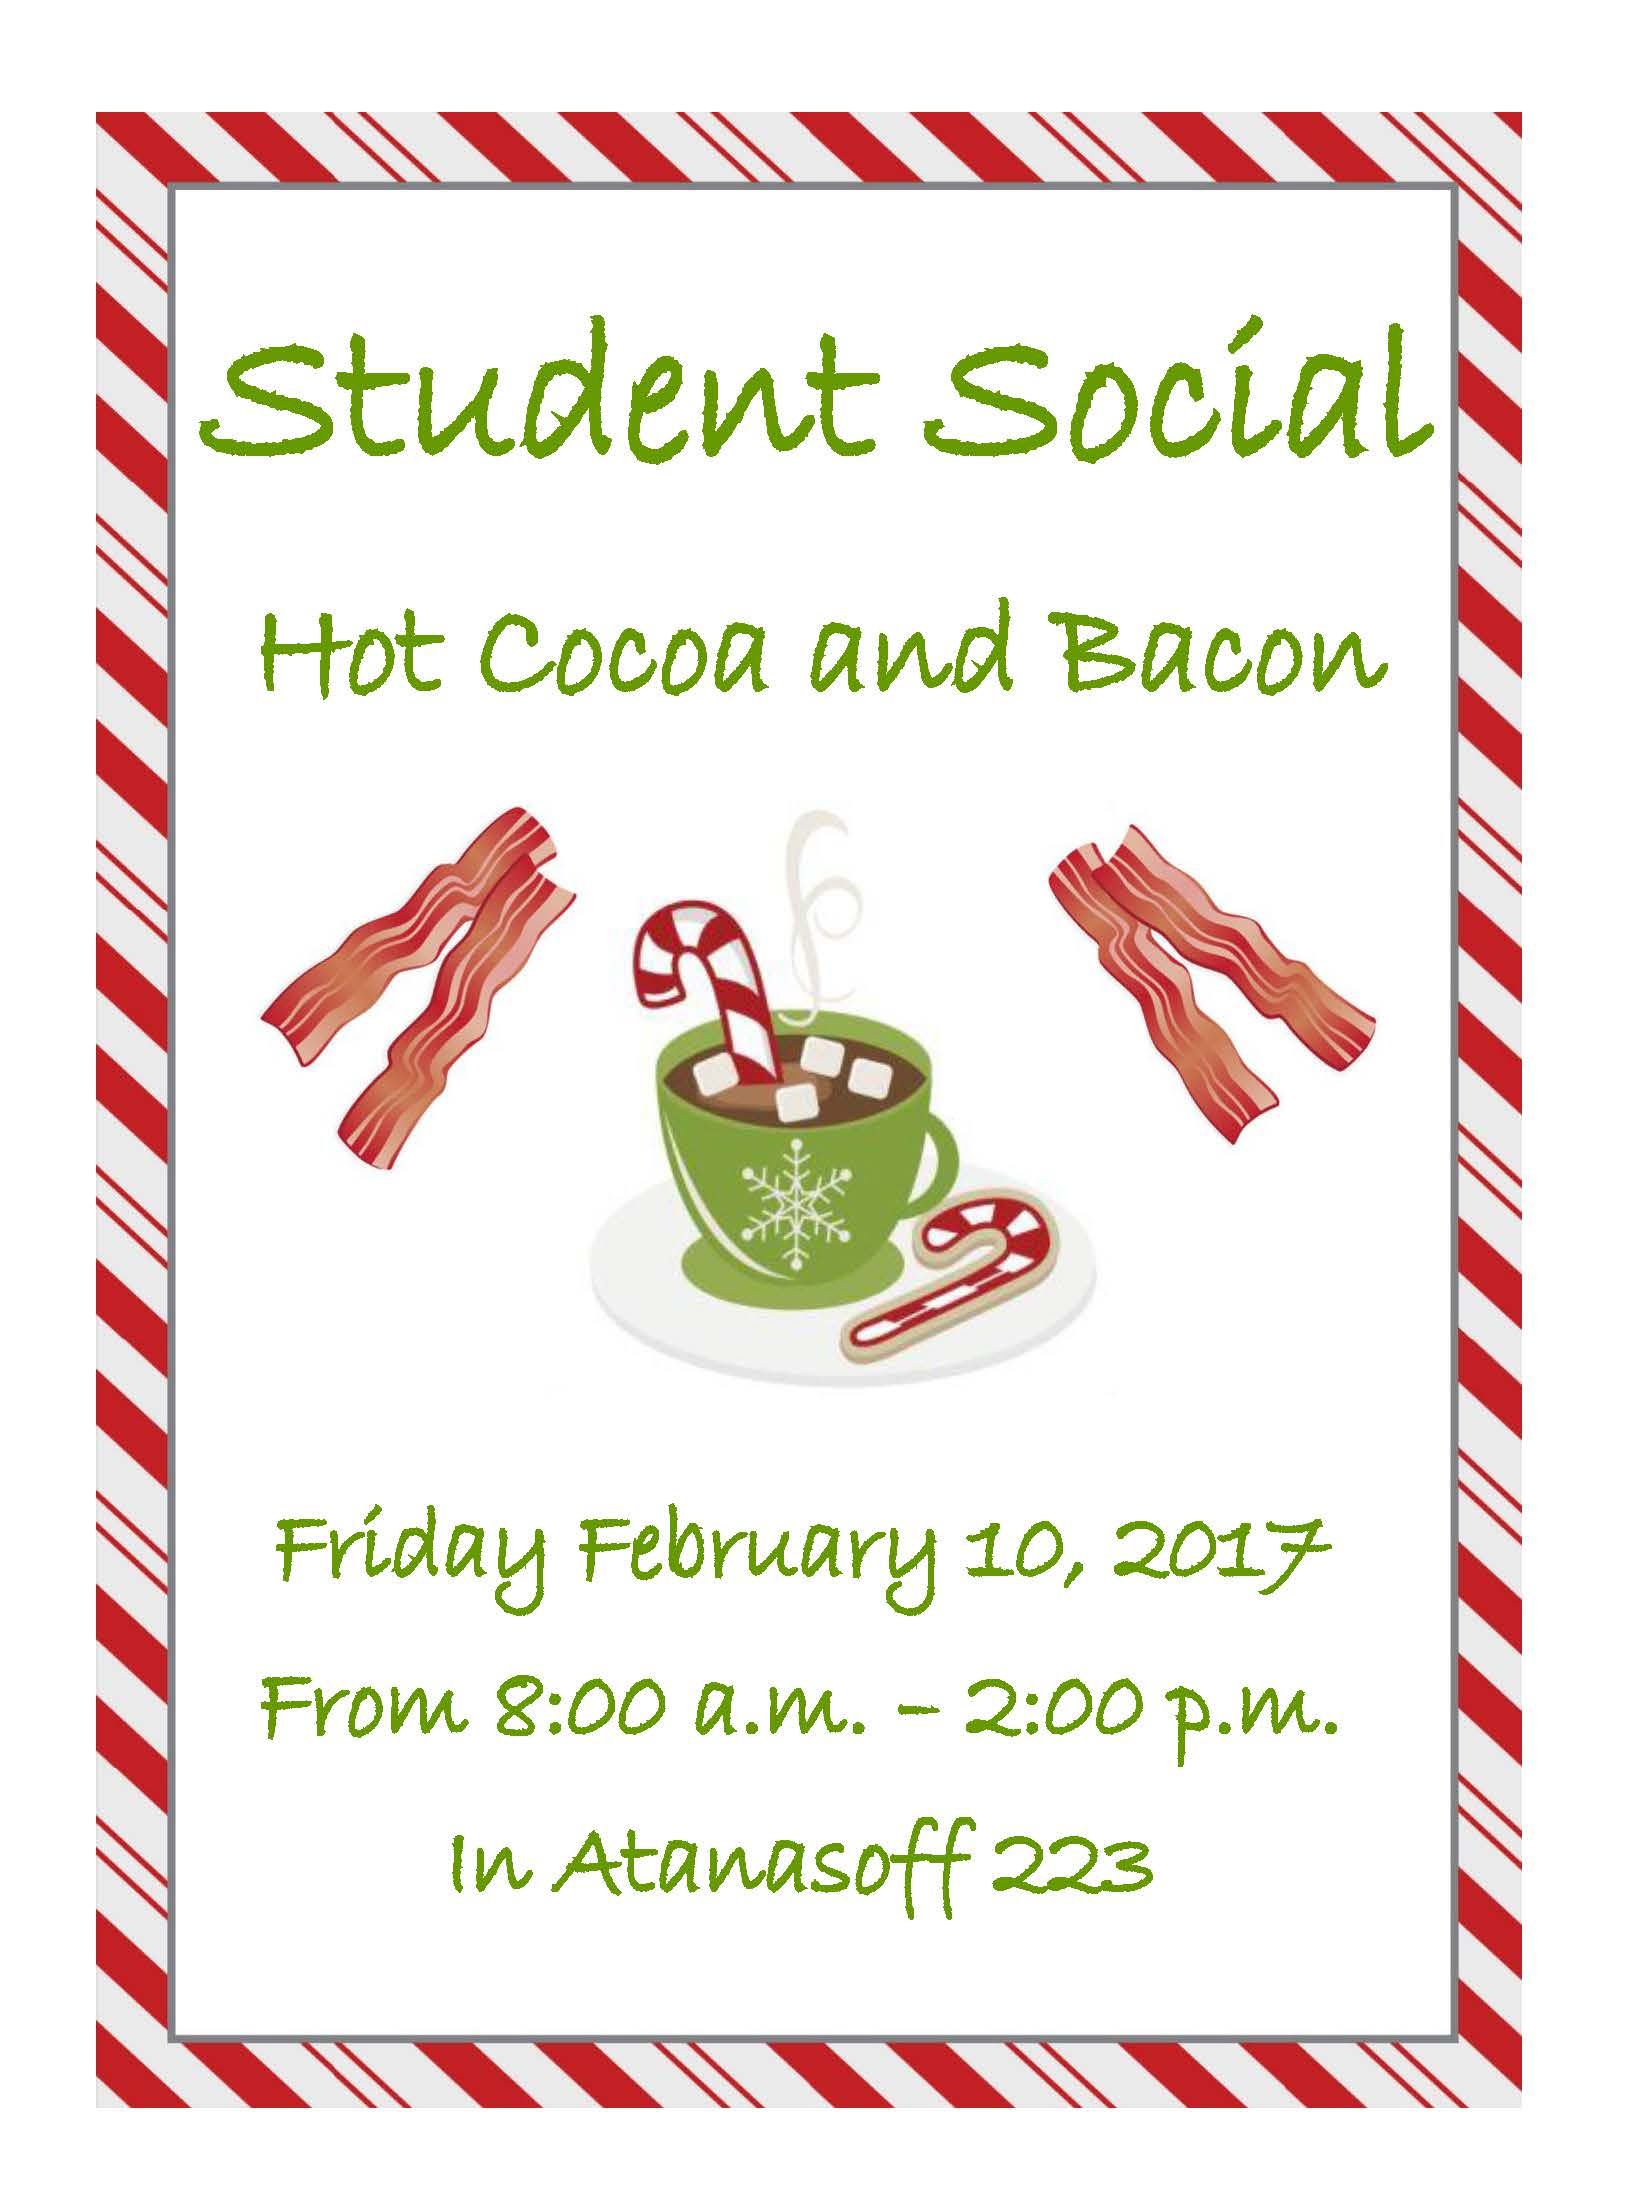 Student Social Friday February 10th from 8am to 2pm in Atanasoff 223